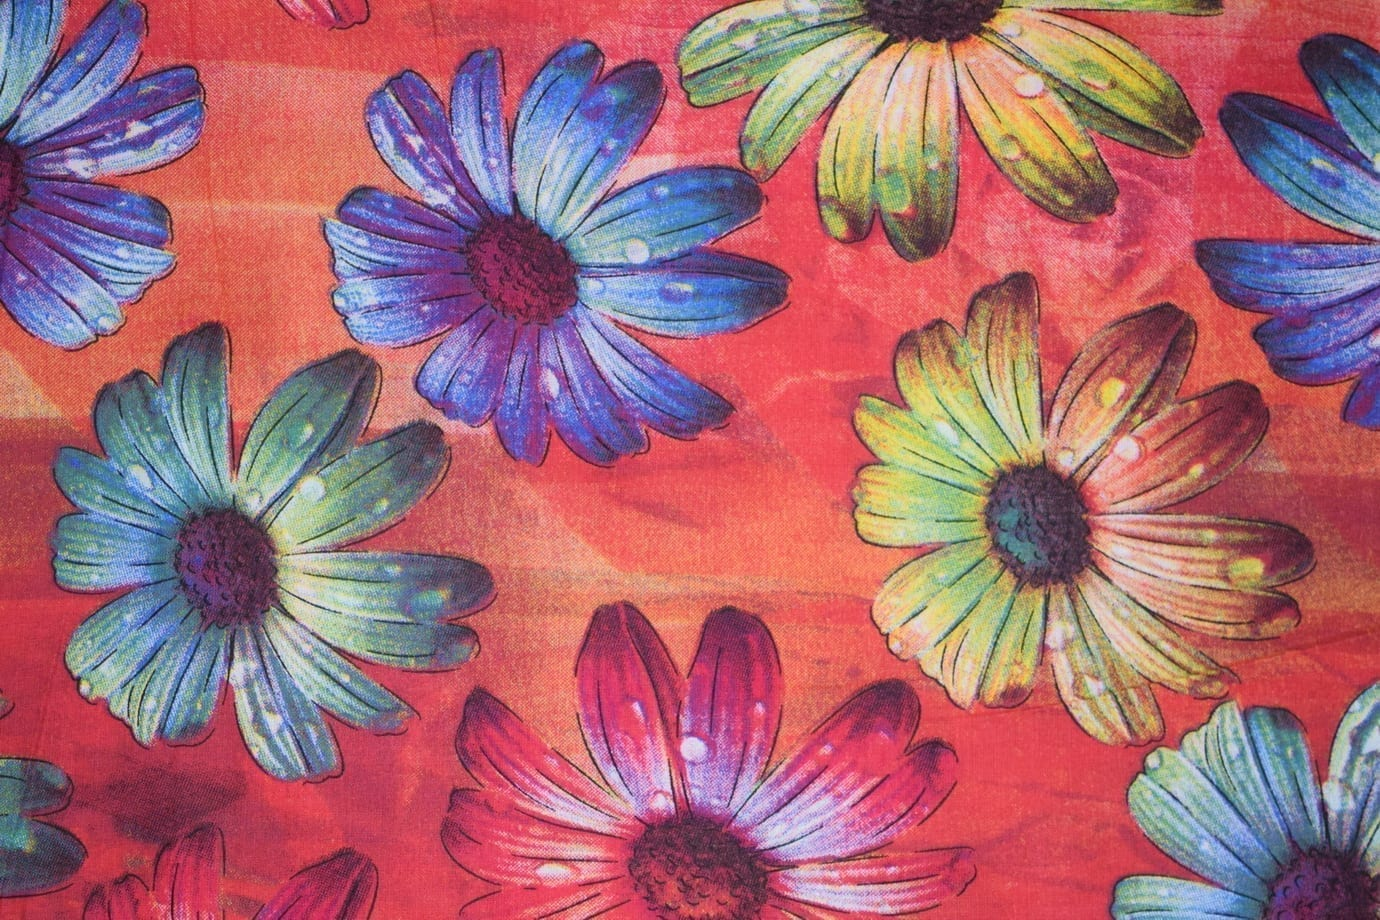 100% PURE Soft COTTON PRINTED FABRIC PC305 1